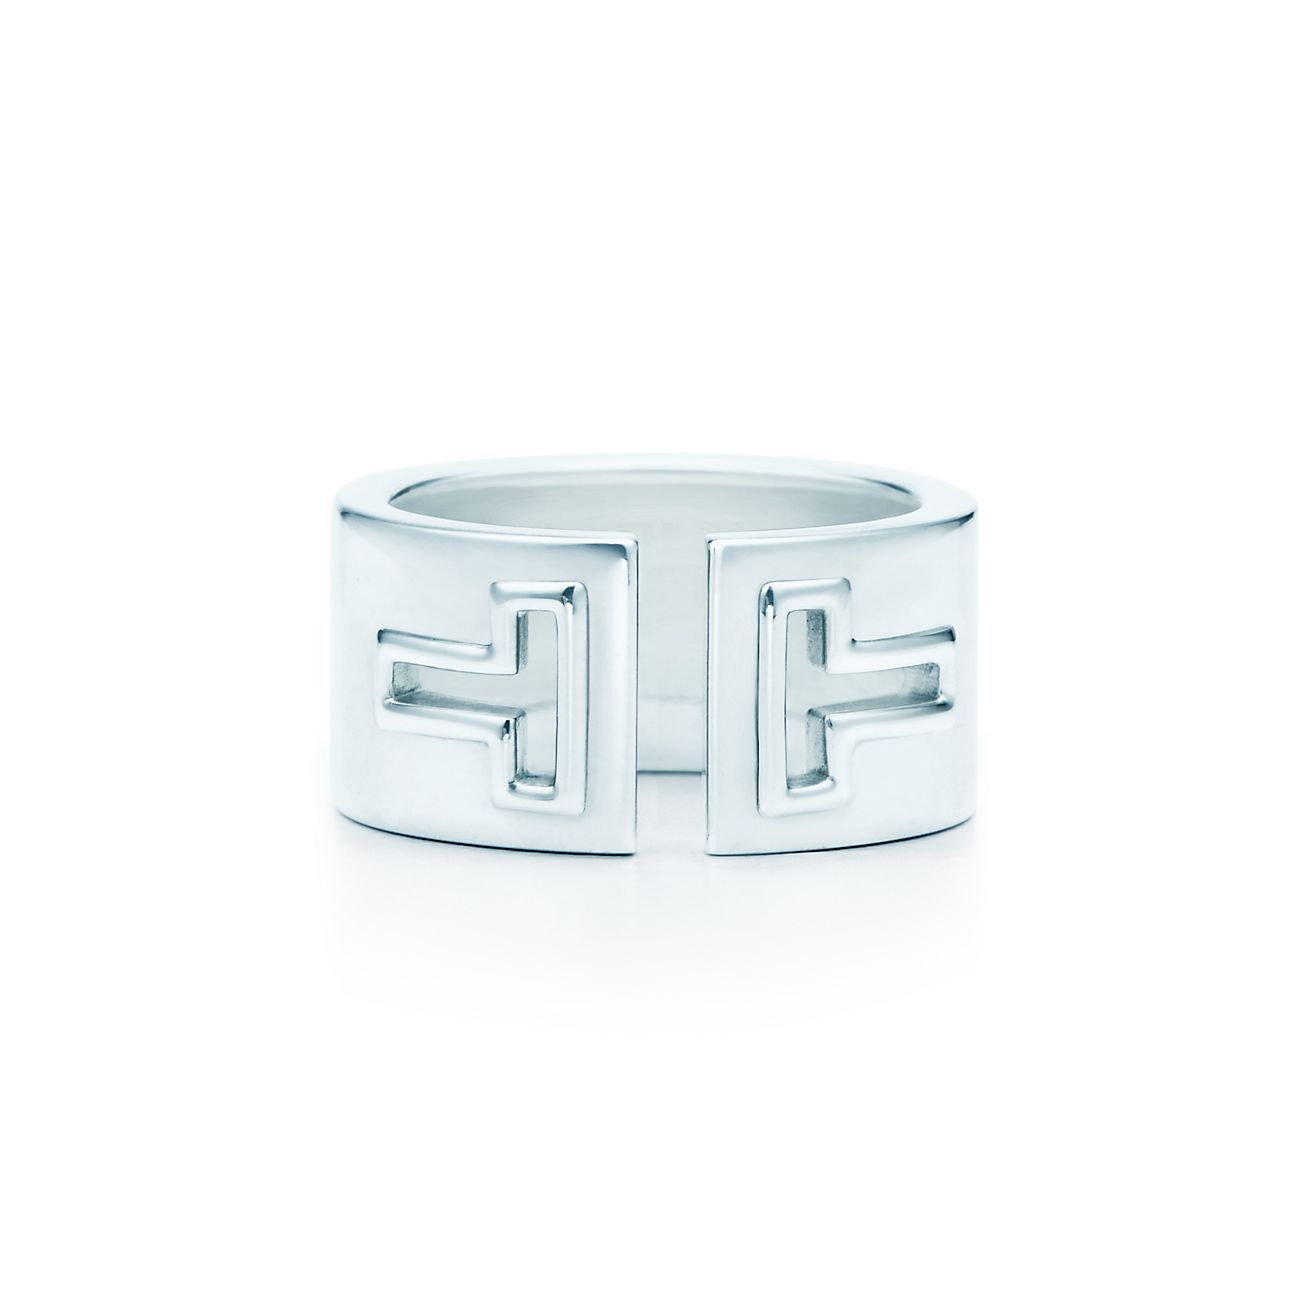 Tiffany T cutout ring in sterling silver. | Tiffany & Co.